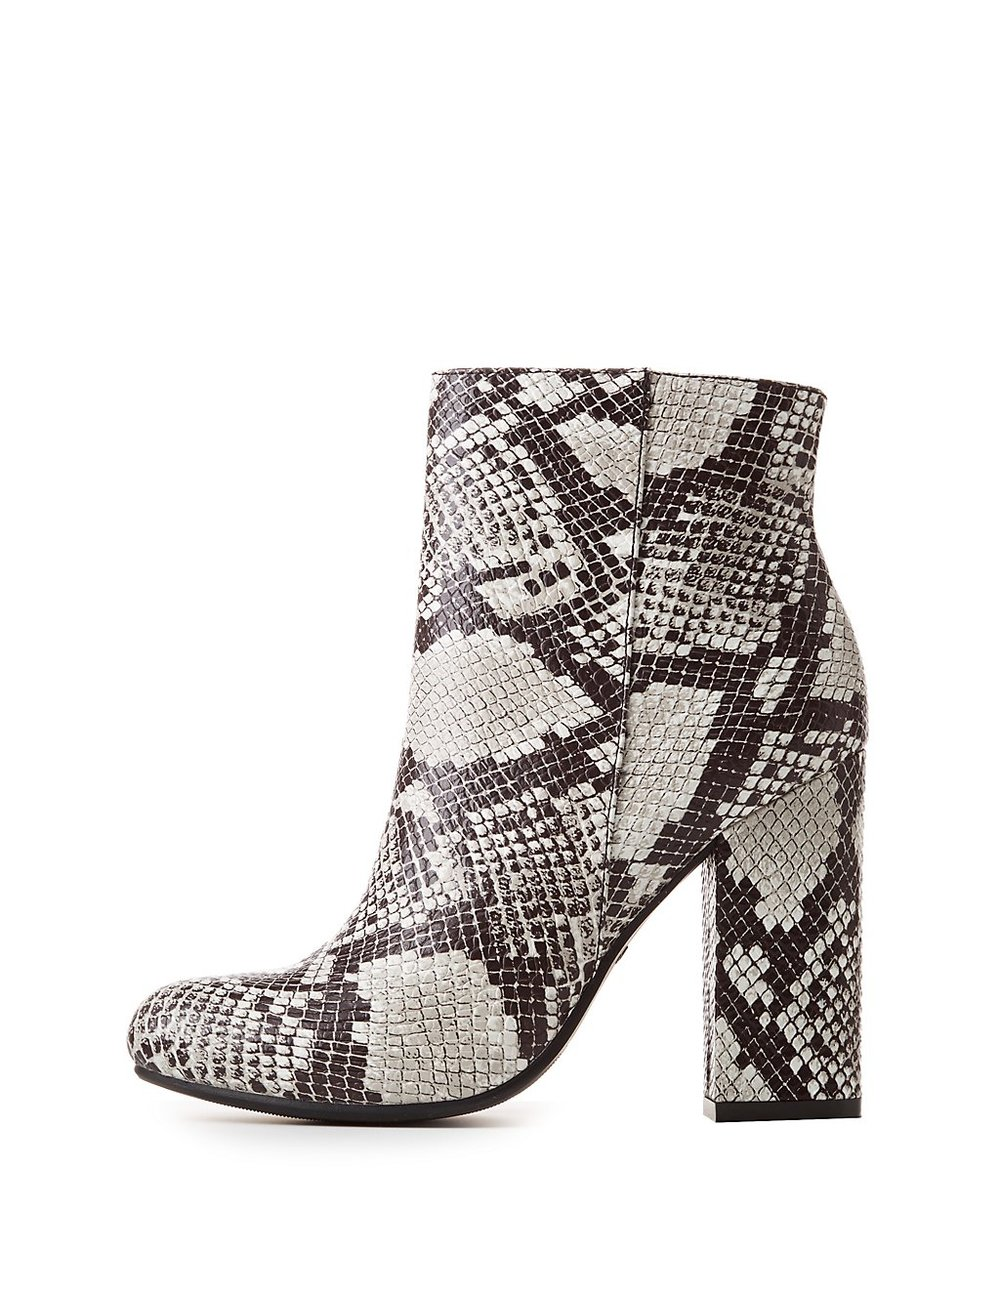 Bamboo Faux Snakeskin Booties ($28.69) - Upgrade your heeled bootie game with these snake skin stunners. Easily paired with raw-hemmed jeans or a pleated midi-skirt, these shoes serve as a great transitional piece.